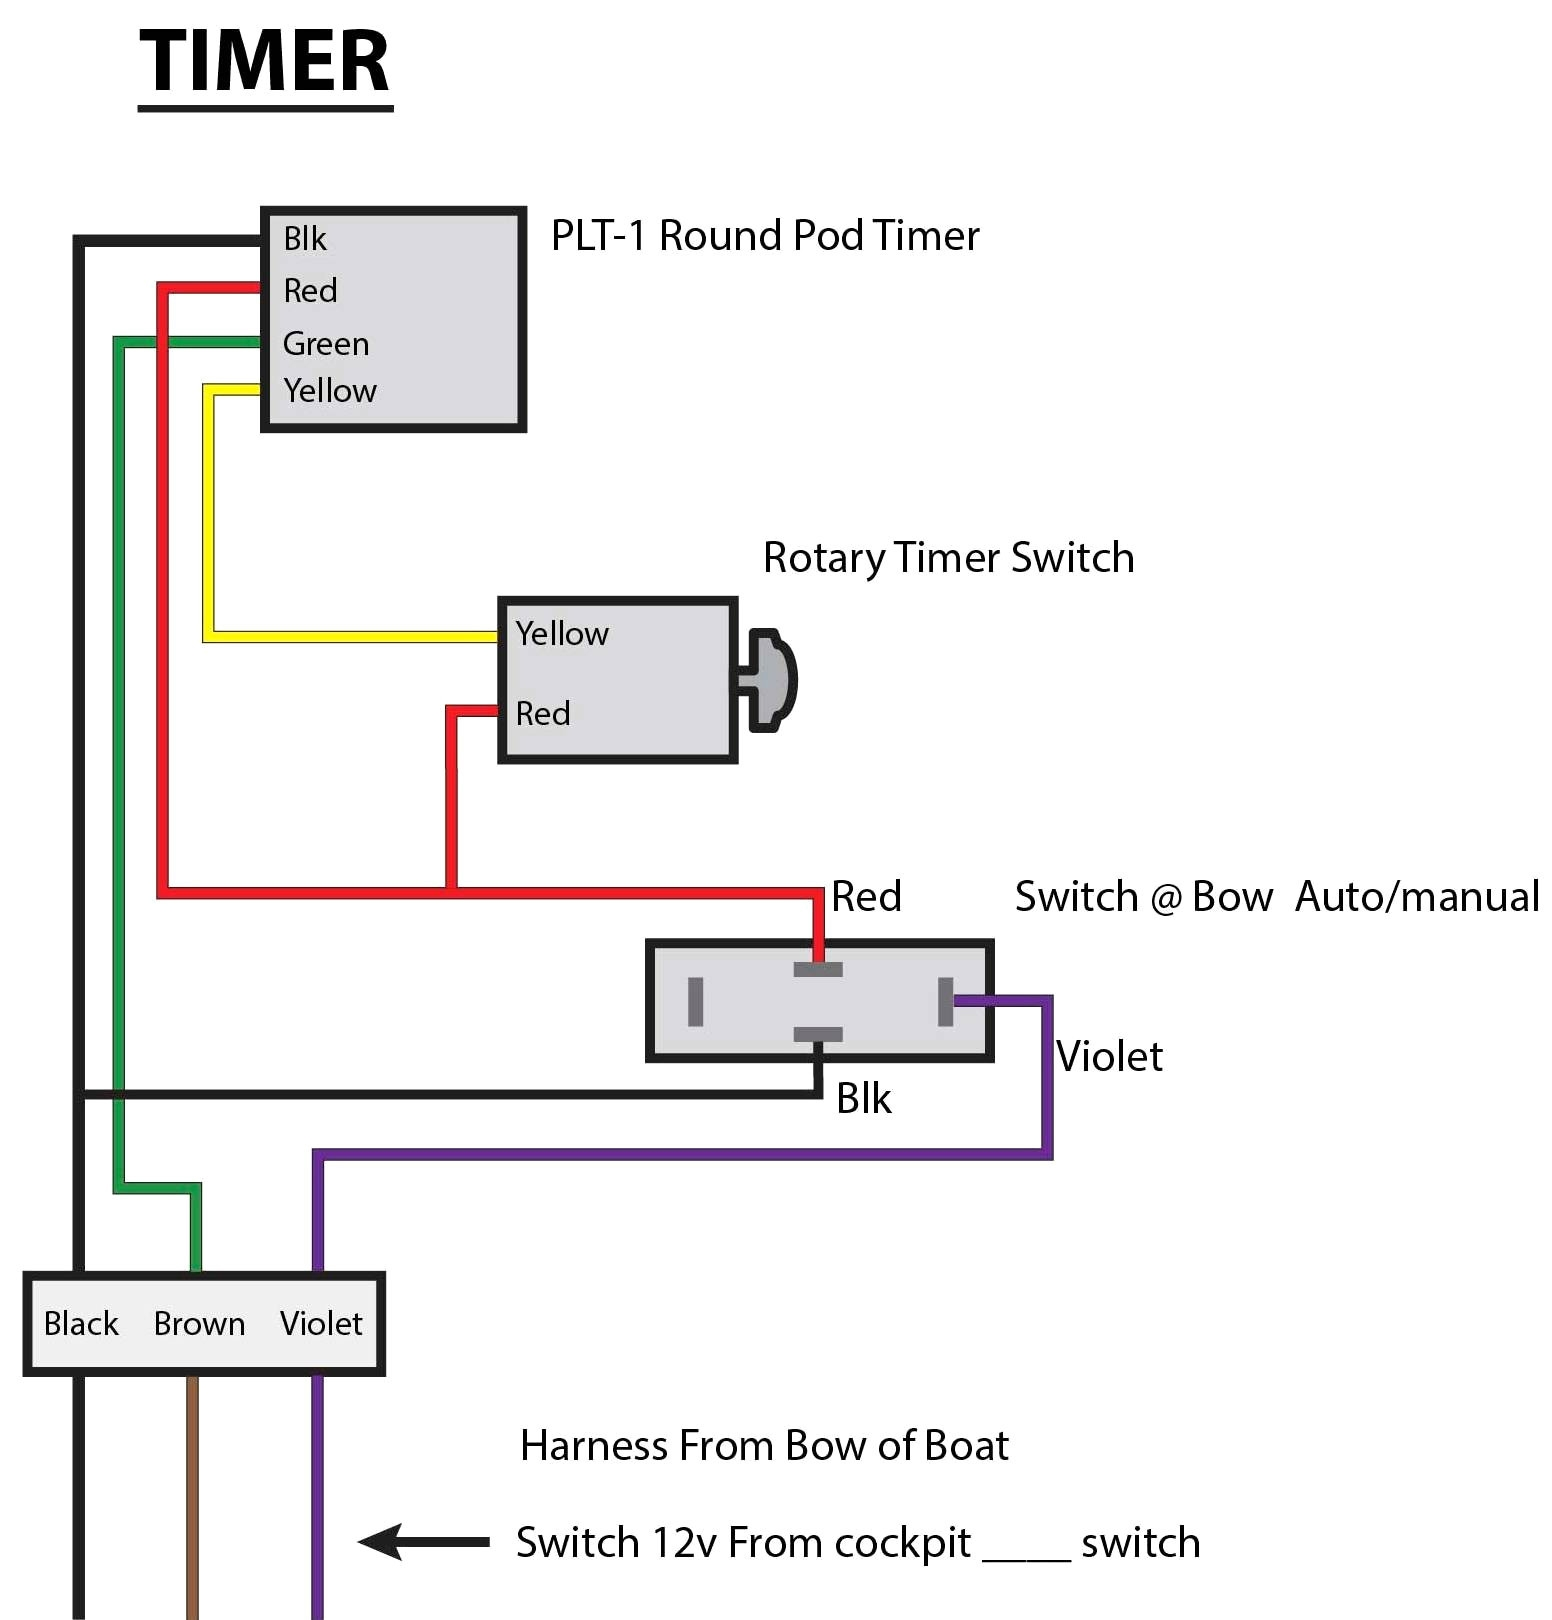 hight resolution of ups maintenance bypass switch wiring diagram wiring diagram for ups bypass switch new rotary switch